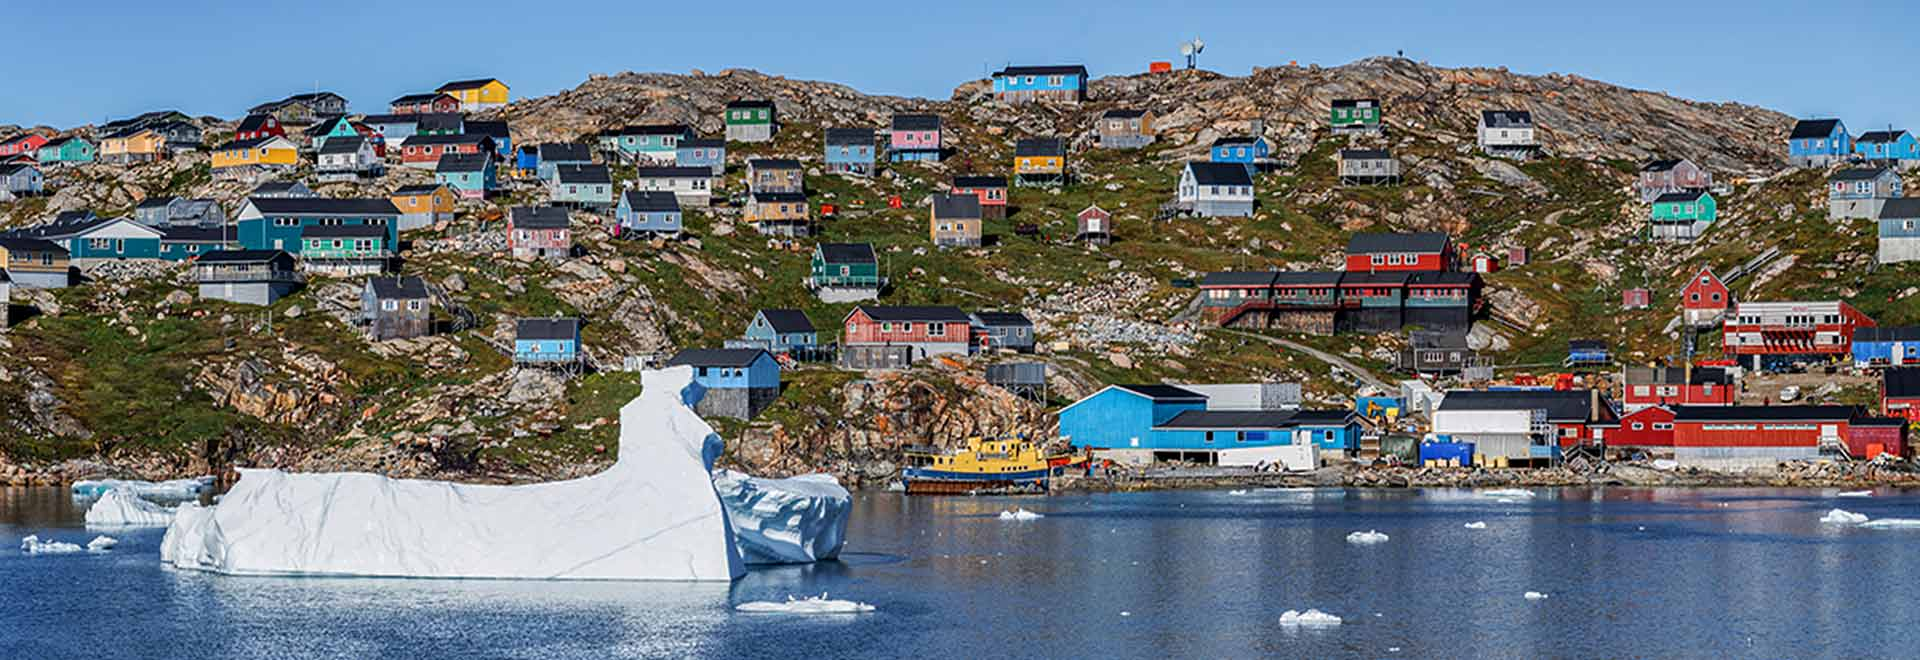 Northwest Passage Greenland Colorful Houses